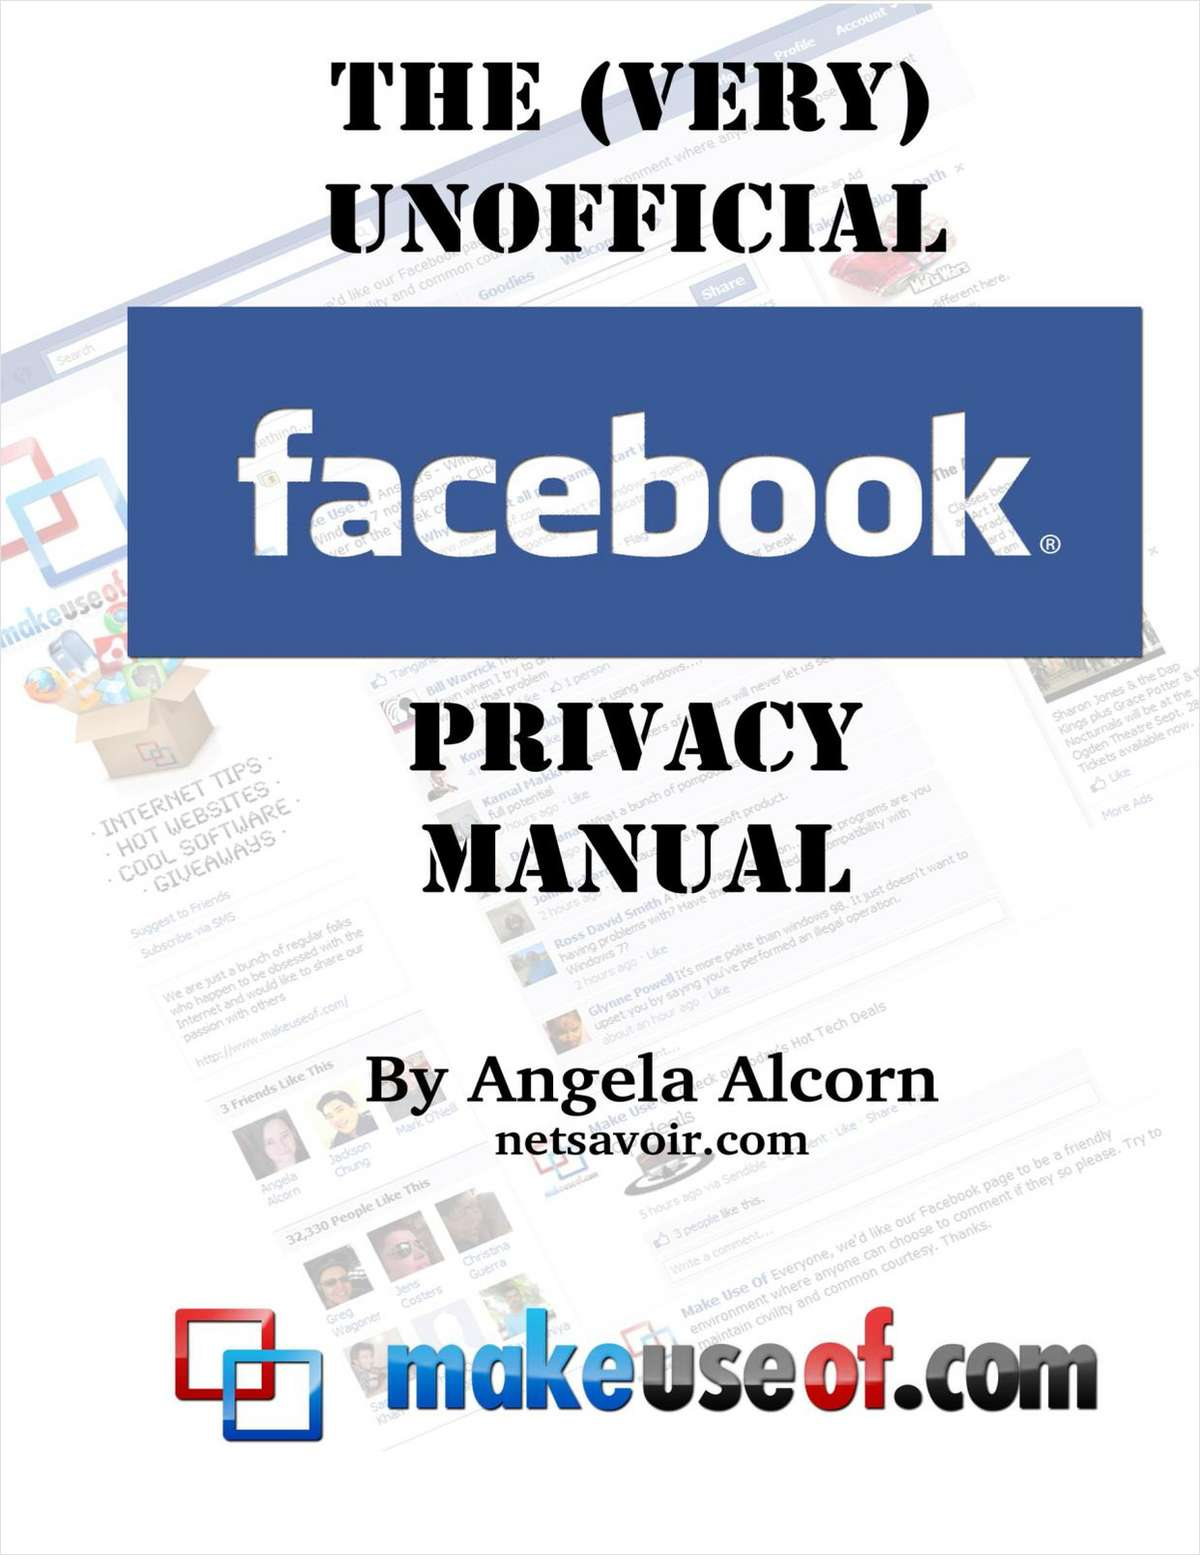 The (VERY) Unofficial Guide To Facebook Privacy